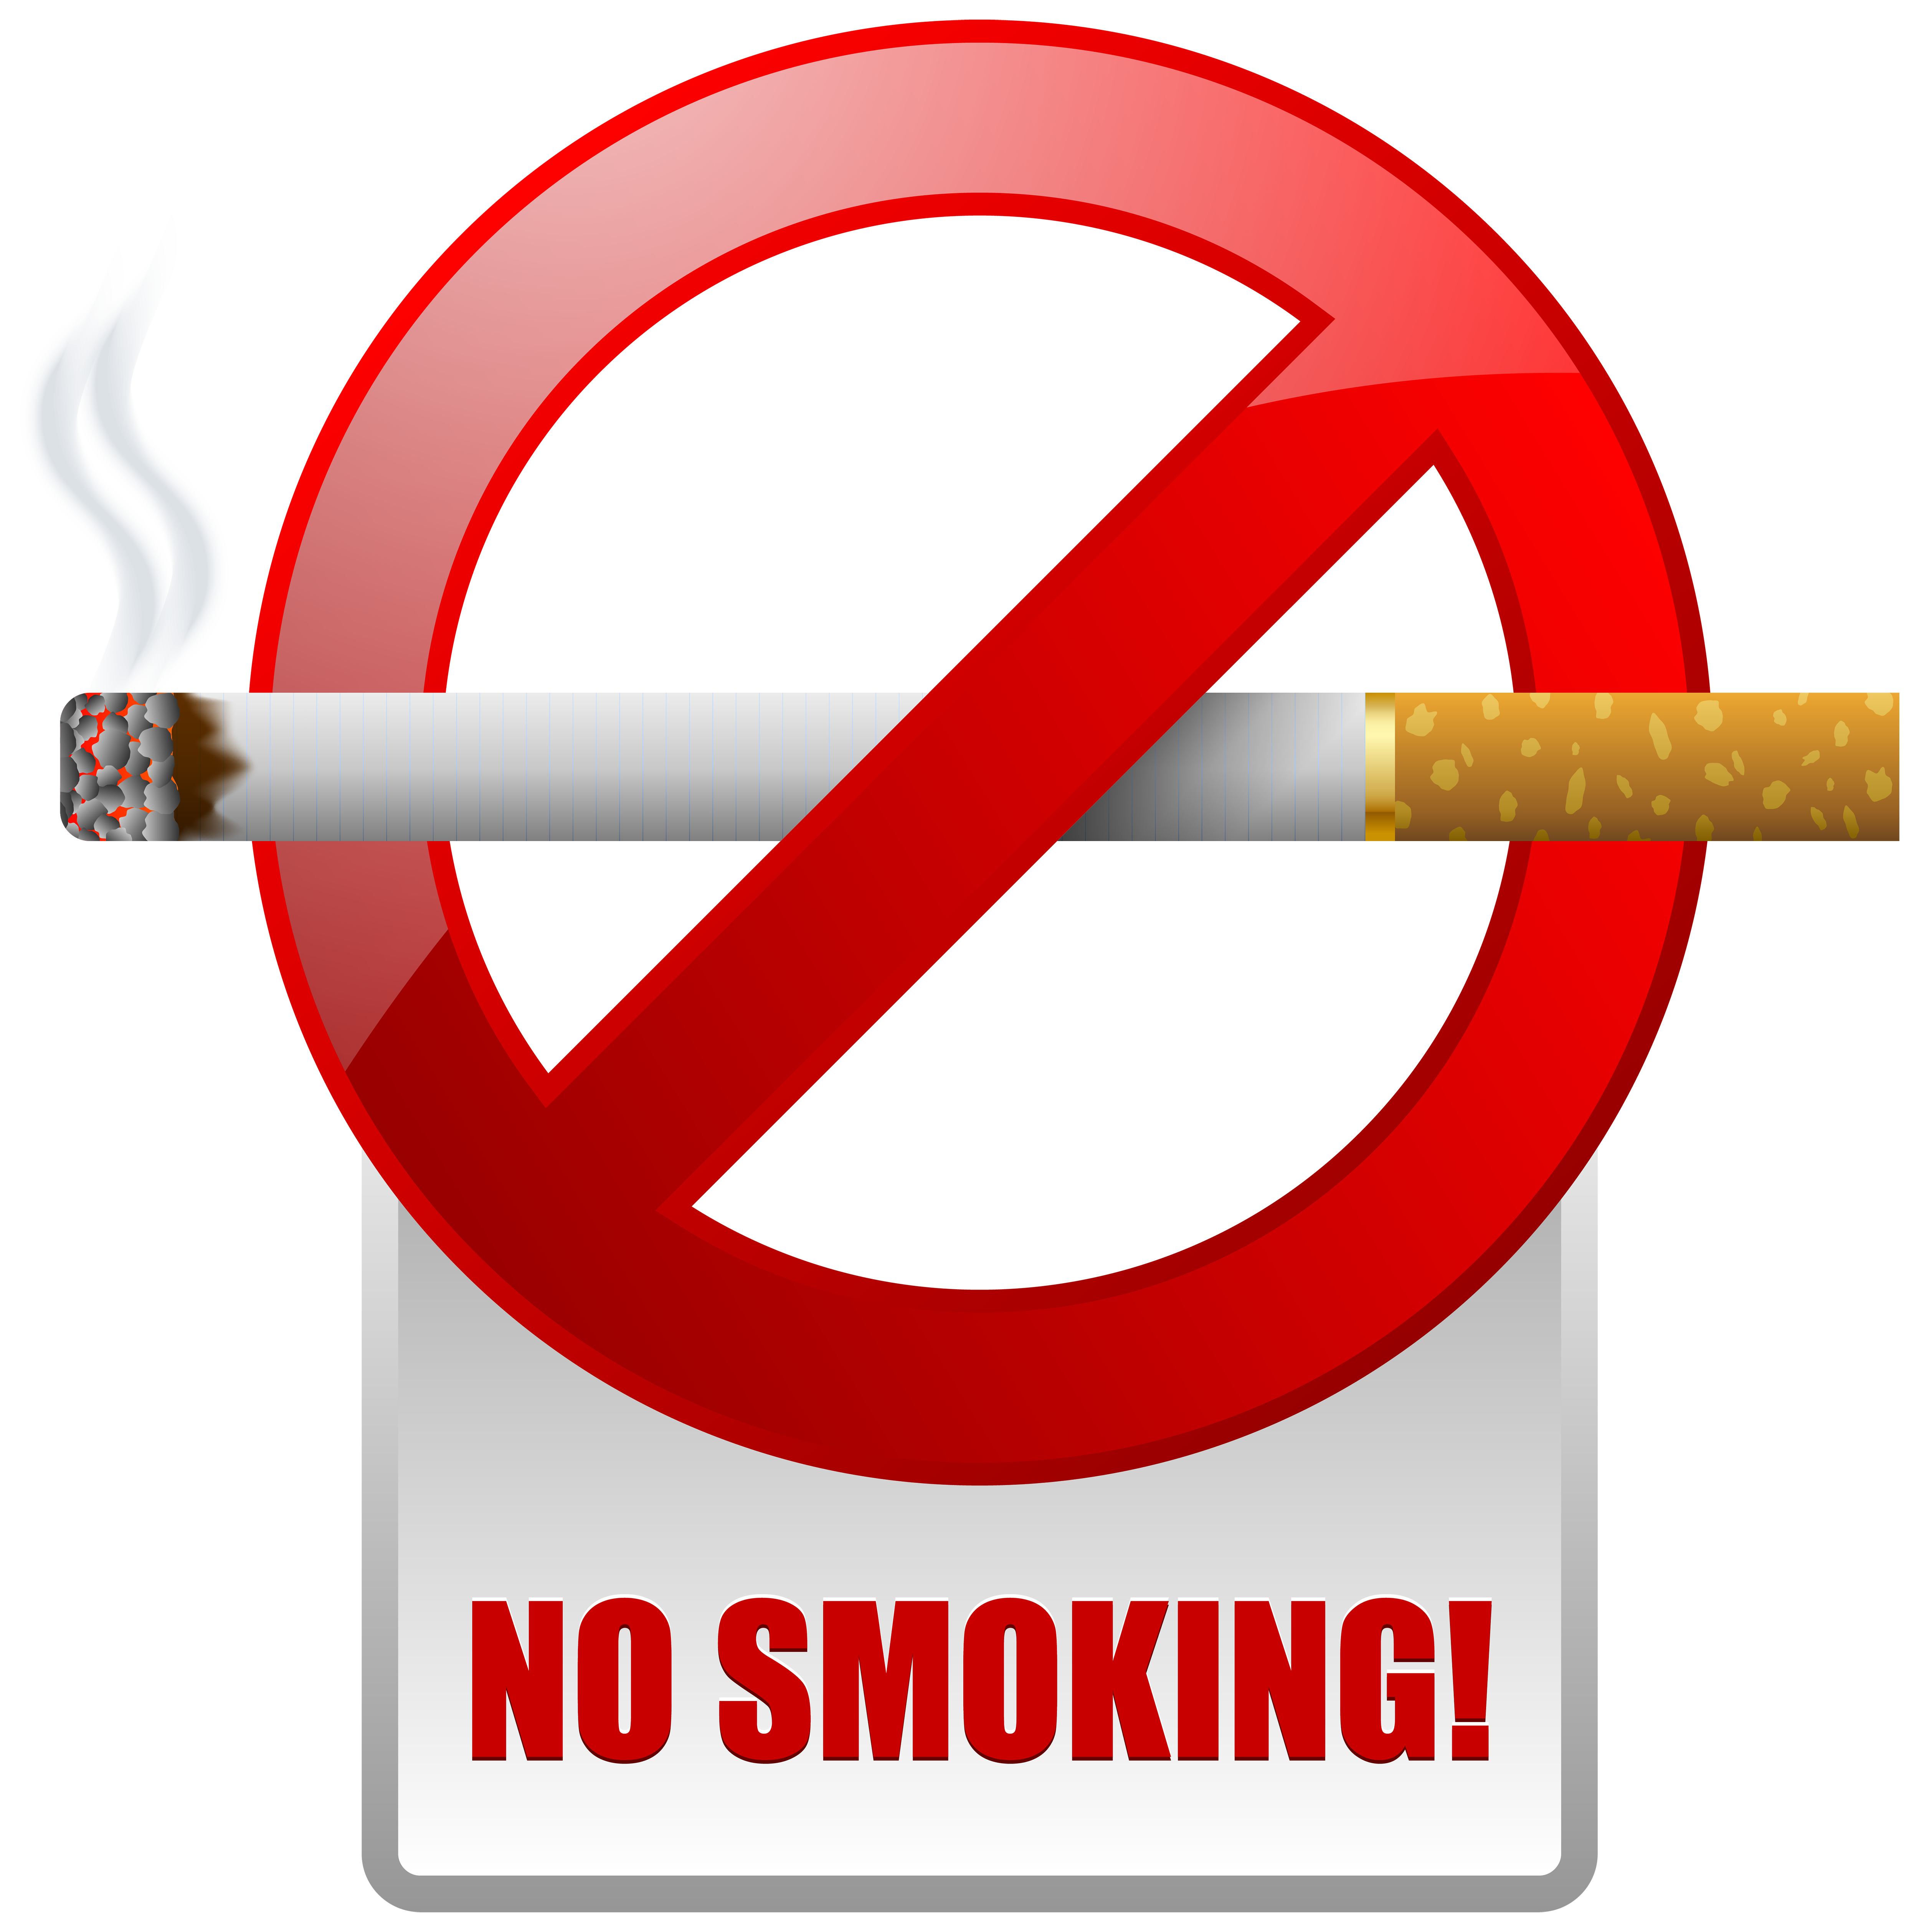 Red No Smoking Warning Sign PNG Clipart - Best WEB Clipart